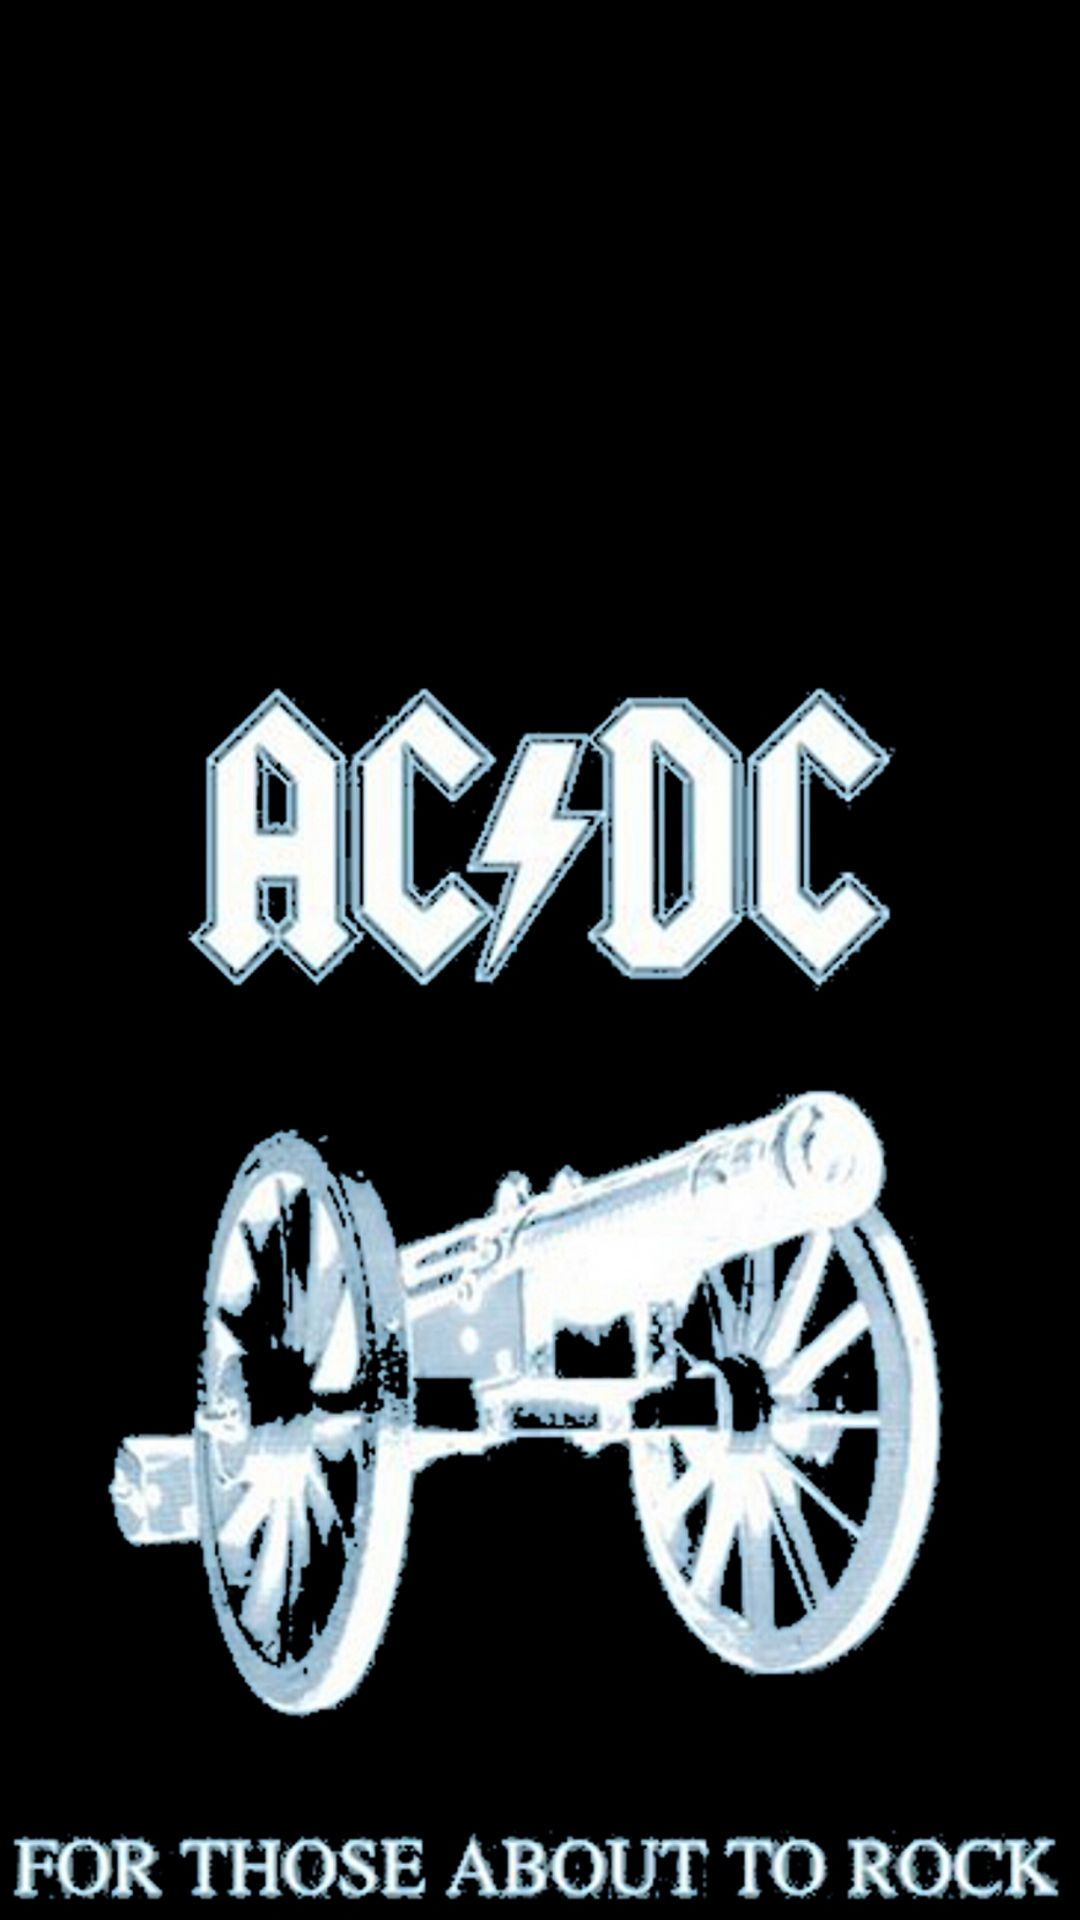 Pin By Steve Albers On Cool Wallpapers Acdc Wallpaper Acdc